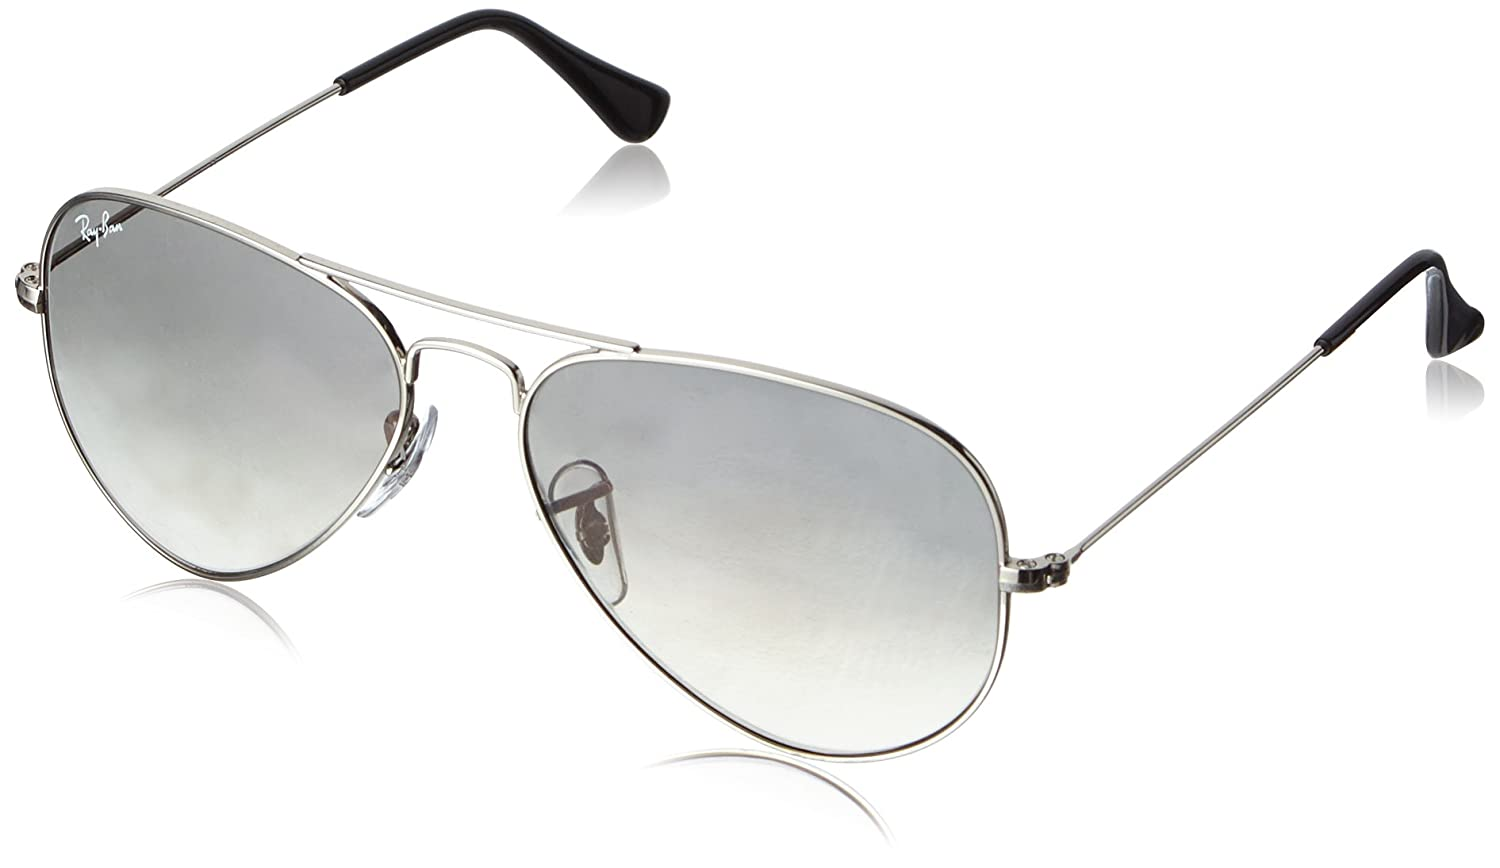 8dcd3089611 Ray-Ban Unisex RB3025 Aviator Polarized Sunglasses 62mm  Amazon.co.uk   Clothing